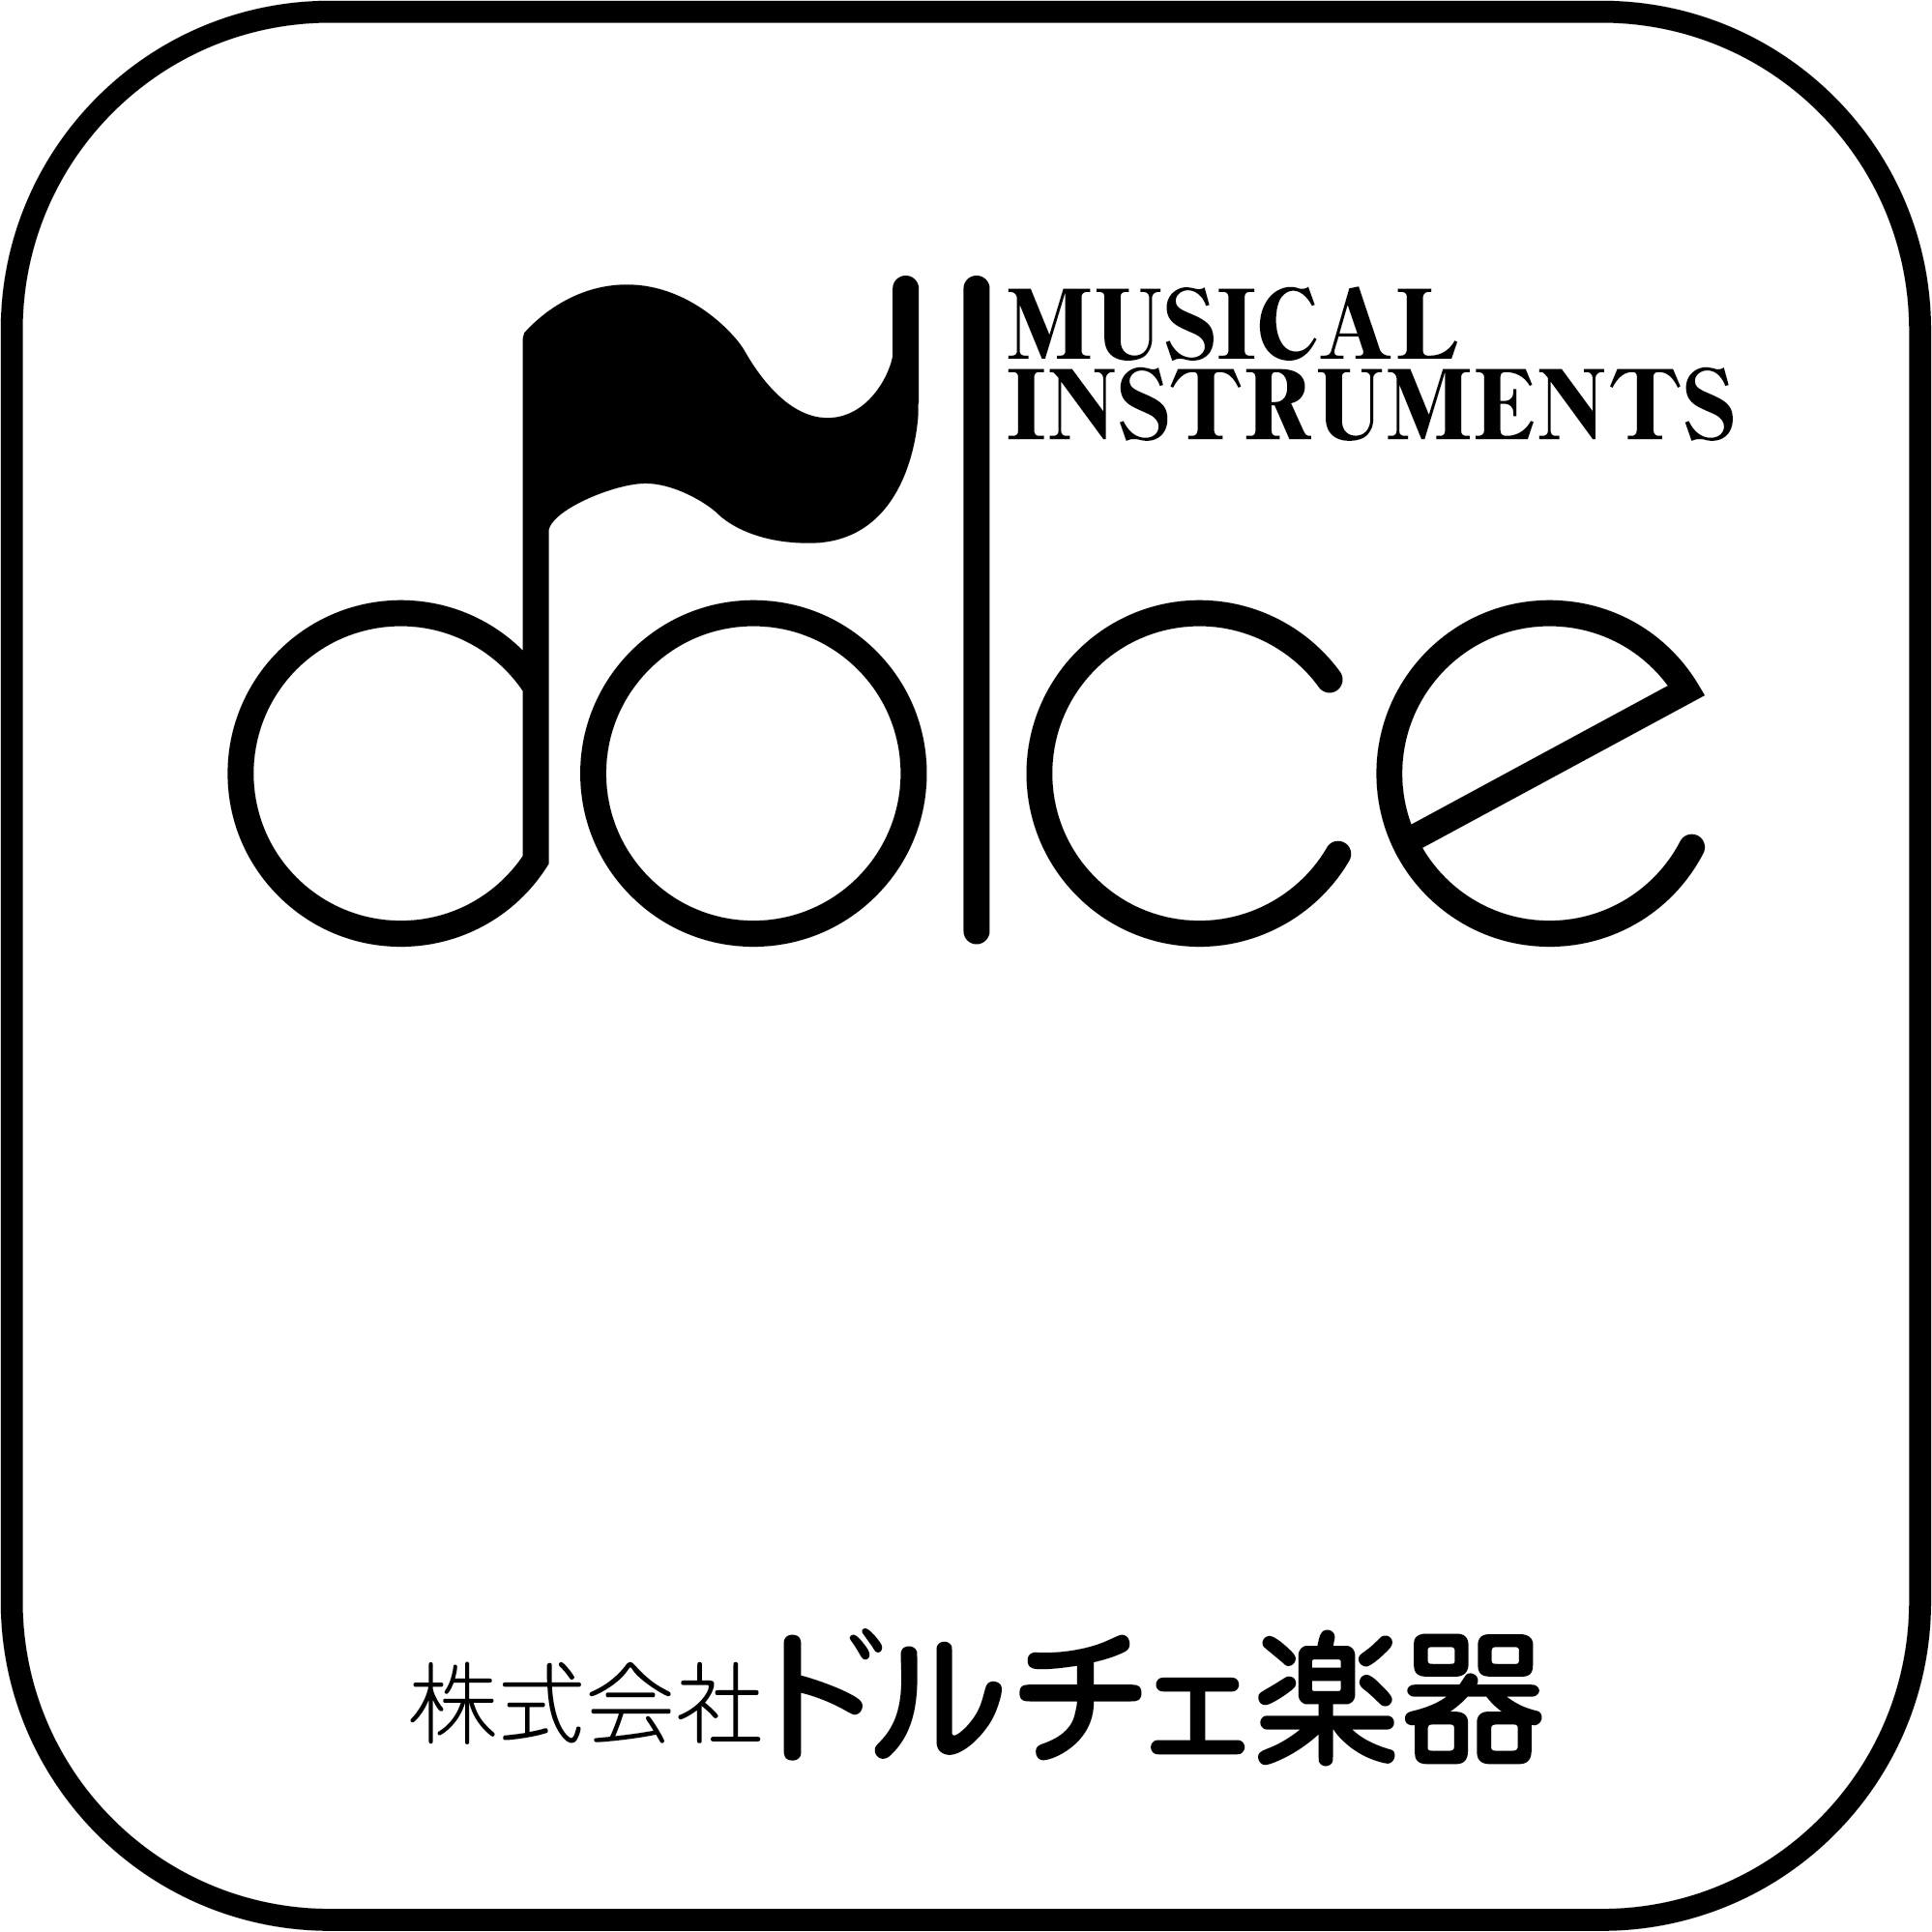 Dolce Musical Instruments - Tokyo  Custom & Q Series